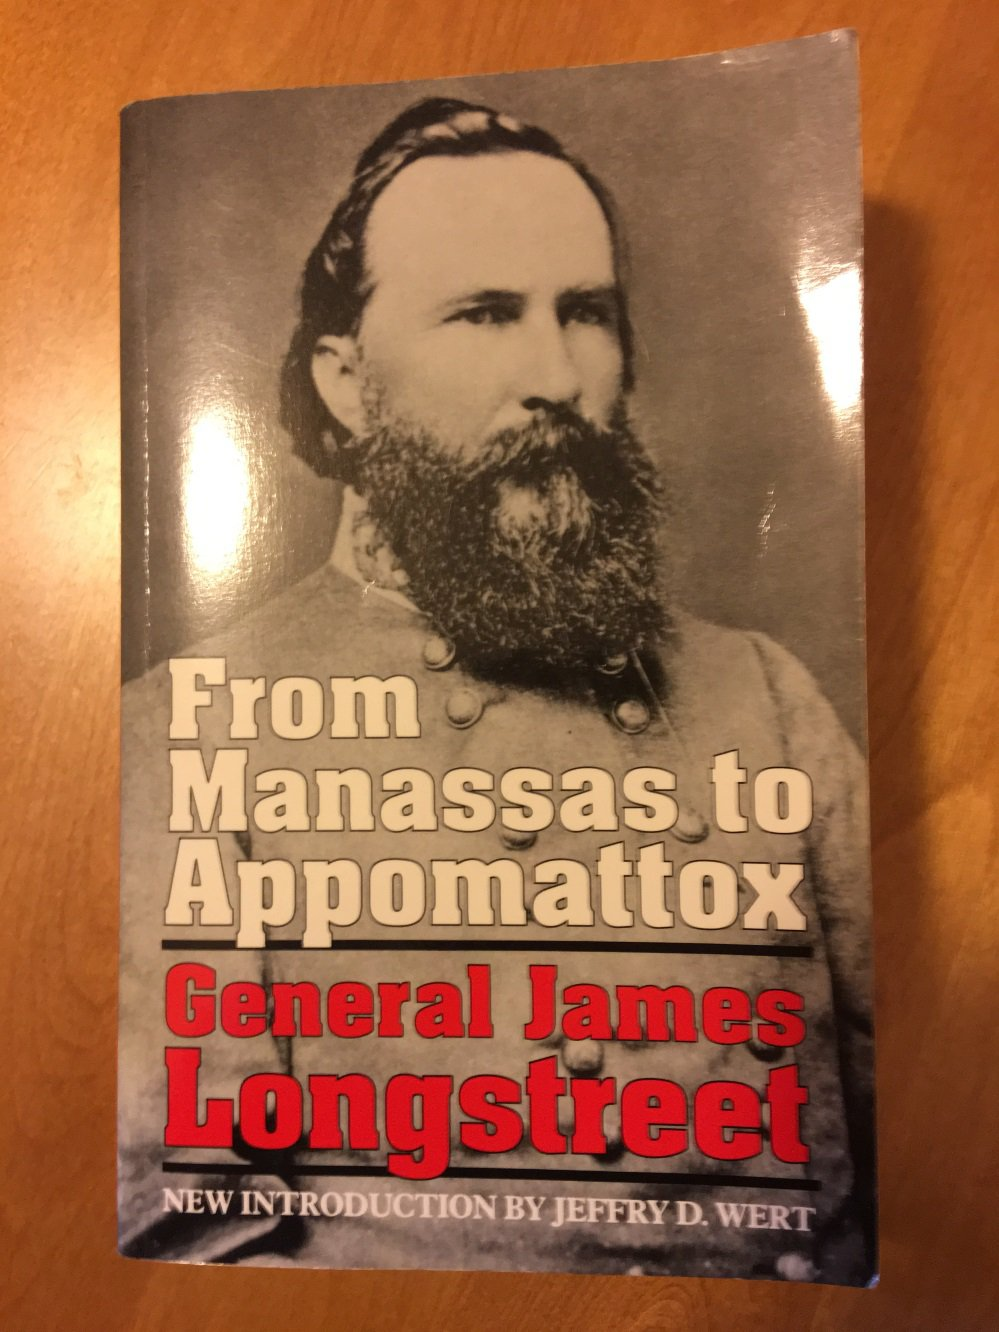 From Manassas To Appomattox by General James Longstreet C.S.A.